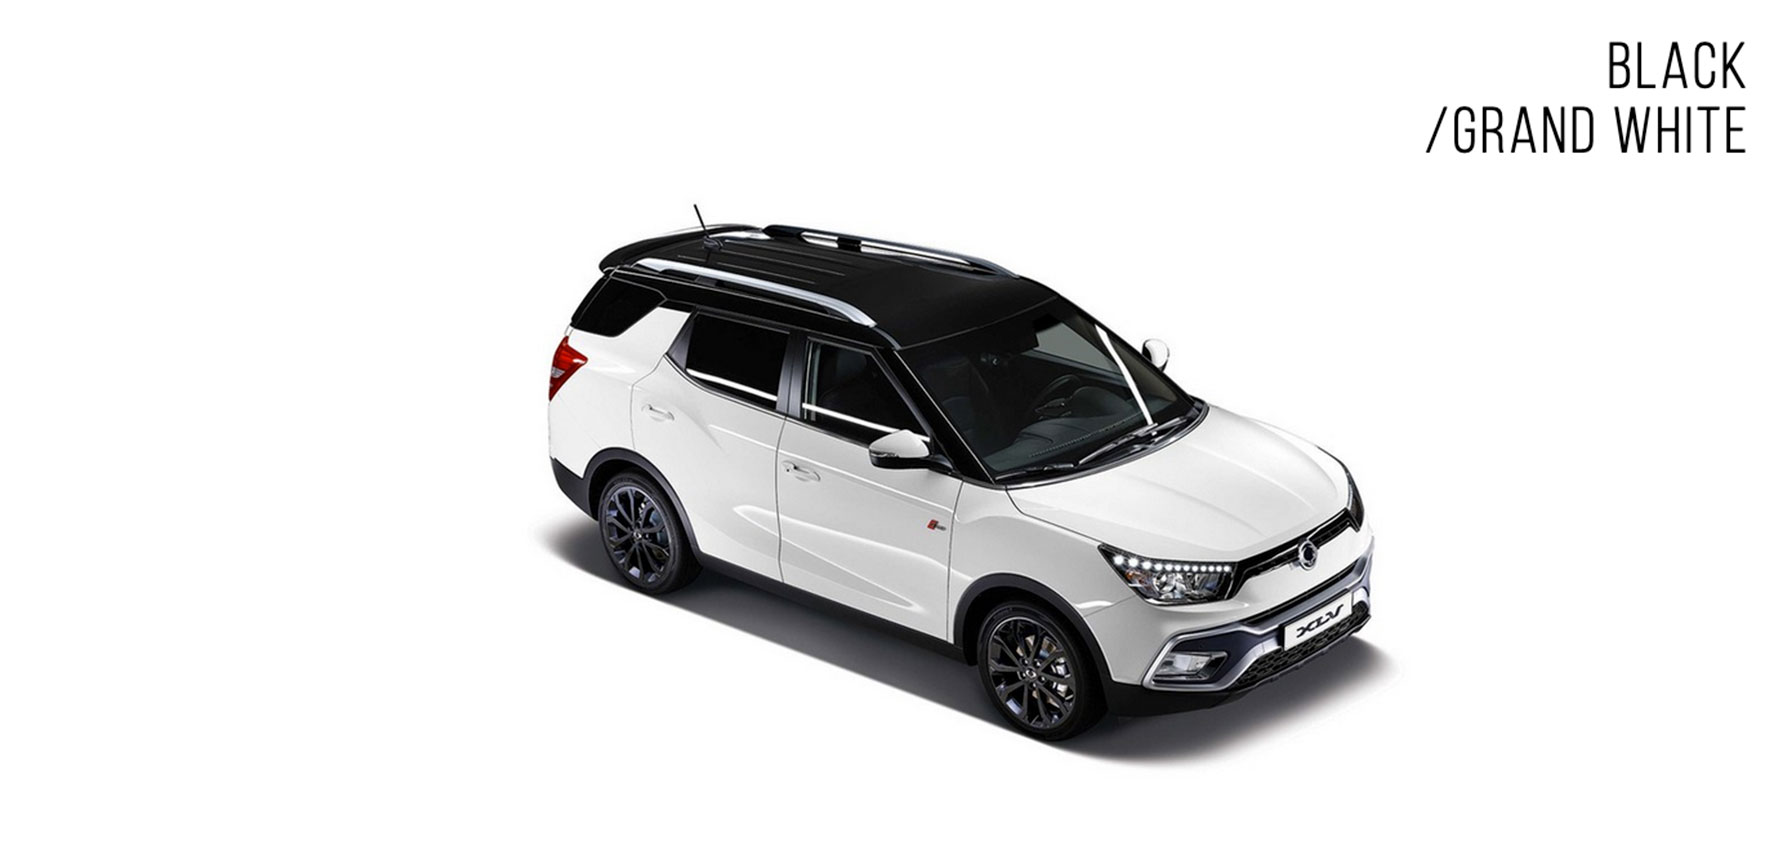 xlv-ssangyong-black-grand-white